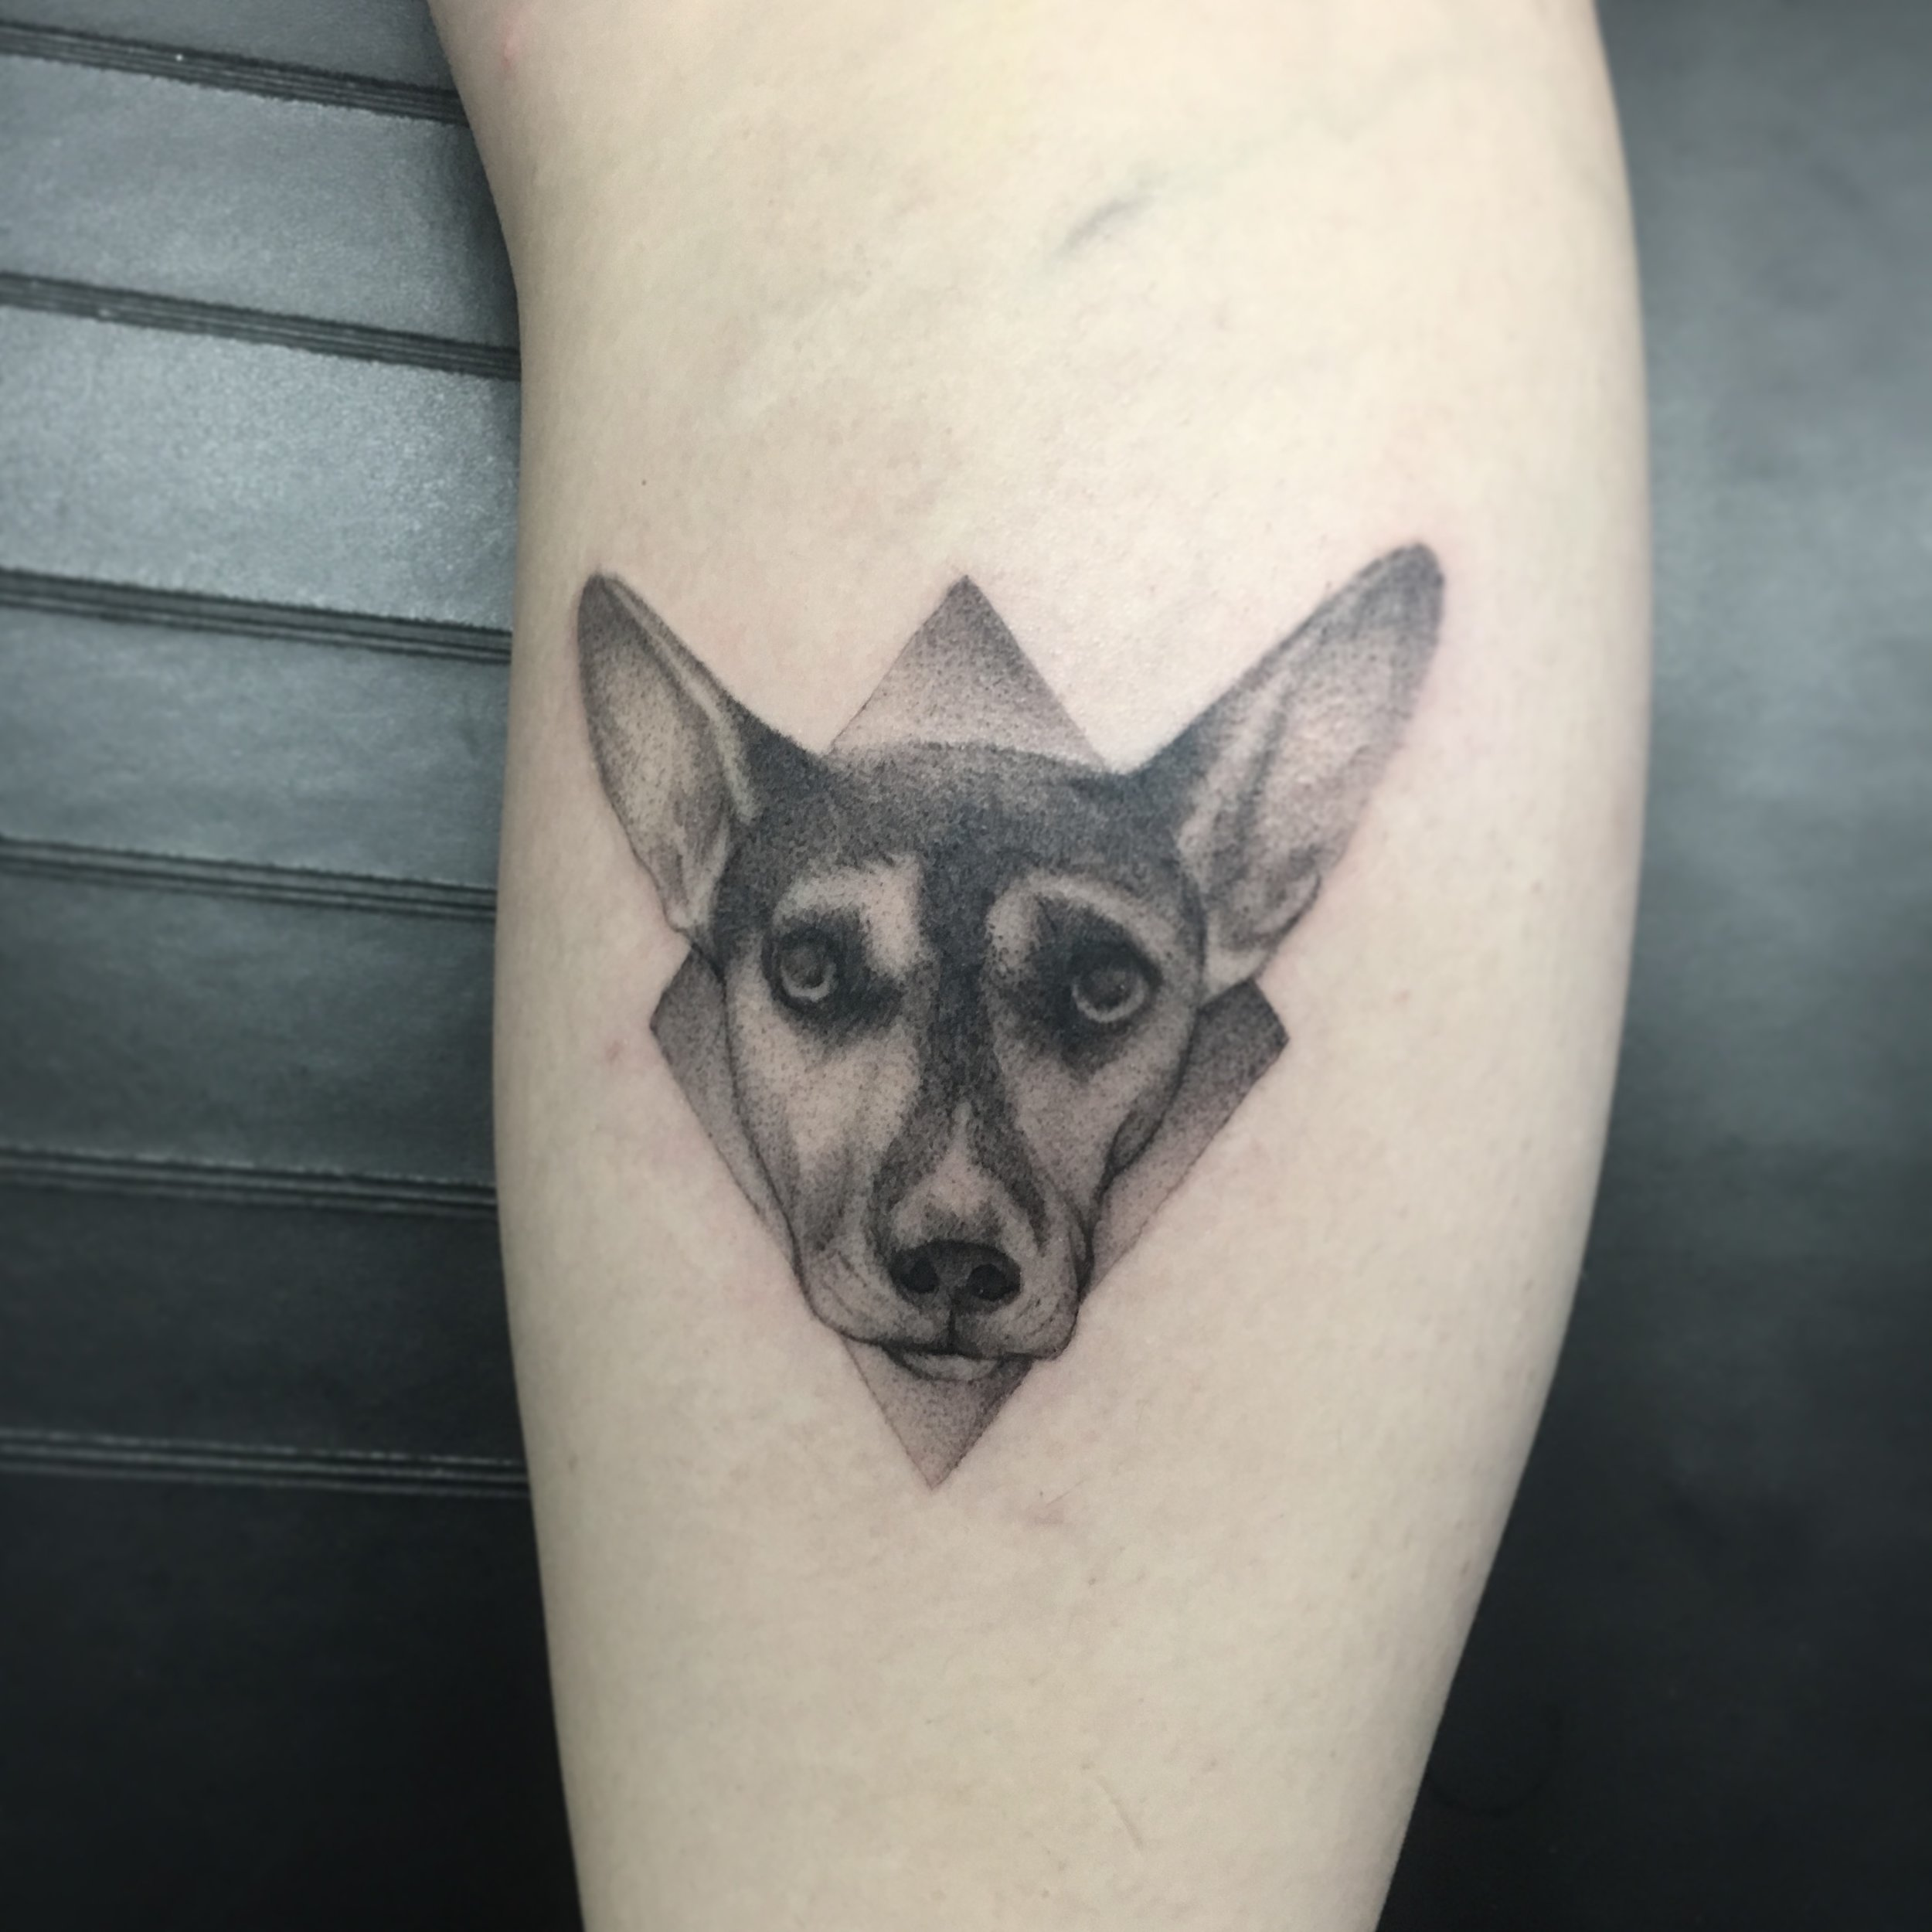 Custom Black Dog in a Diamond Tattoo by  BJ at Certified Tattoo Studios Denver Co  (3).JPG